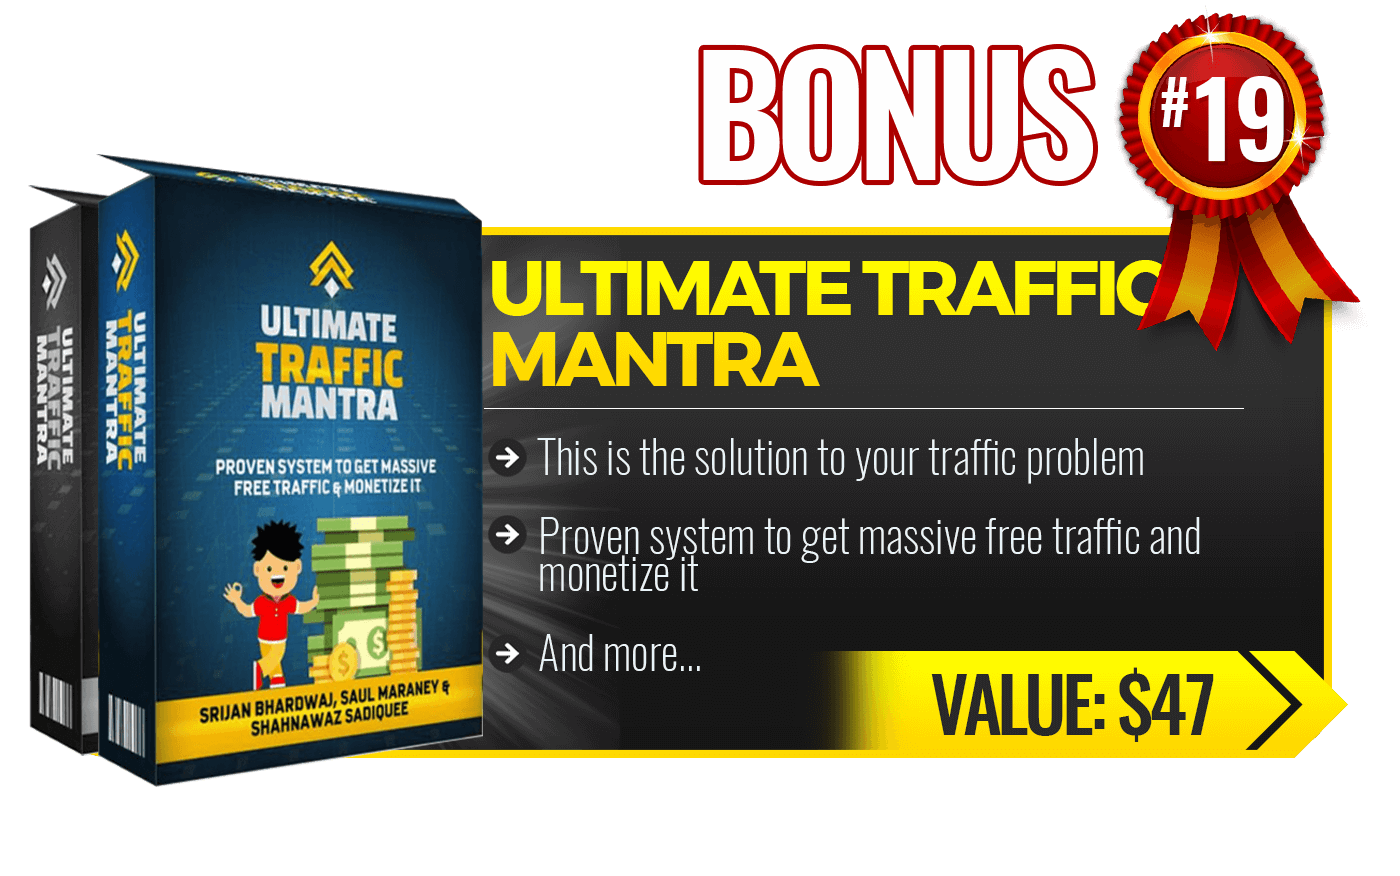 19. Ultimate Traffic Mantra